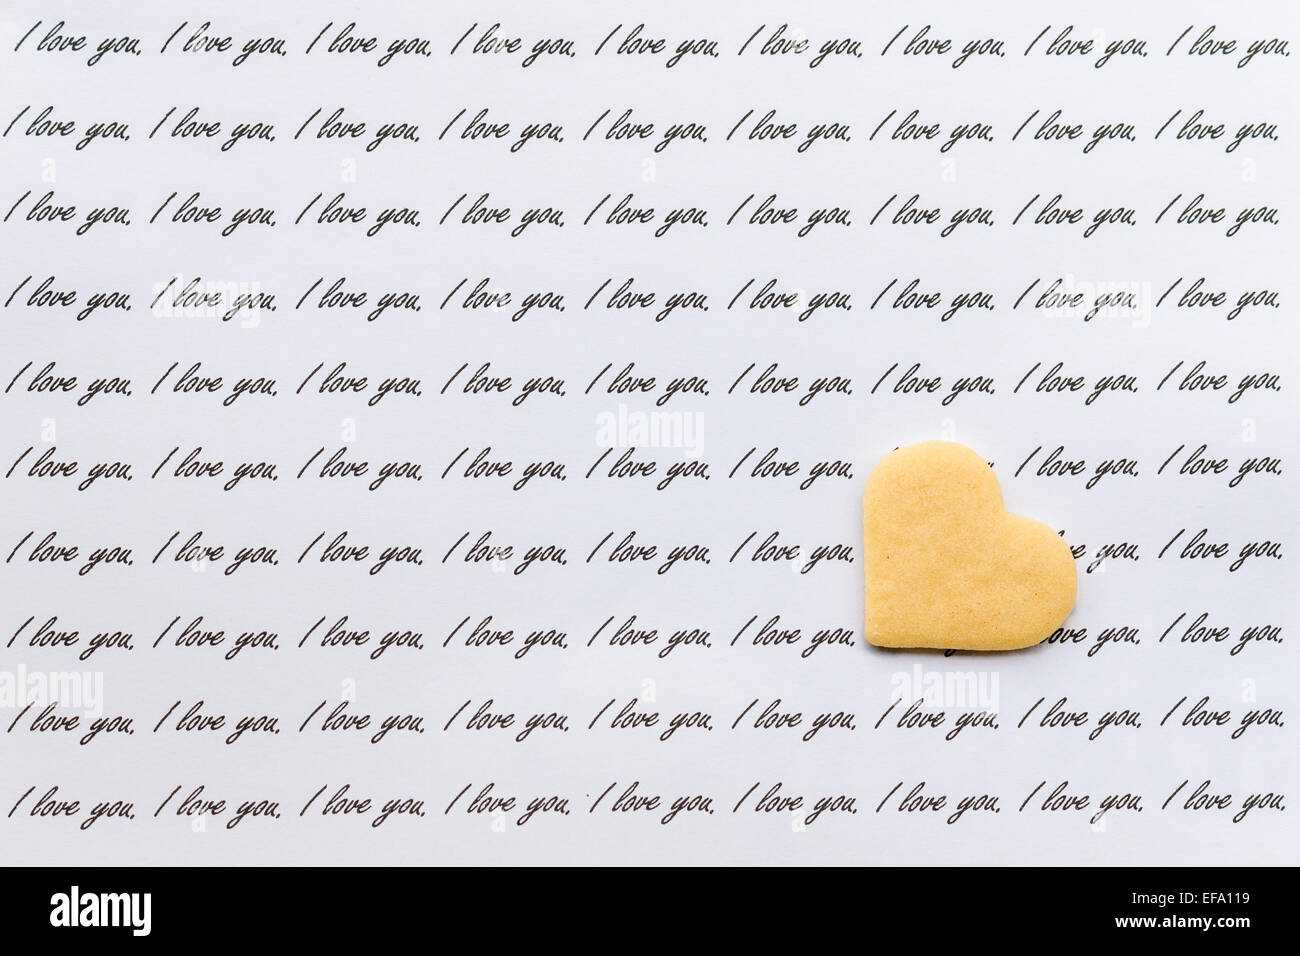 love letter with biscuit heart - Stock Image